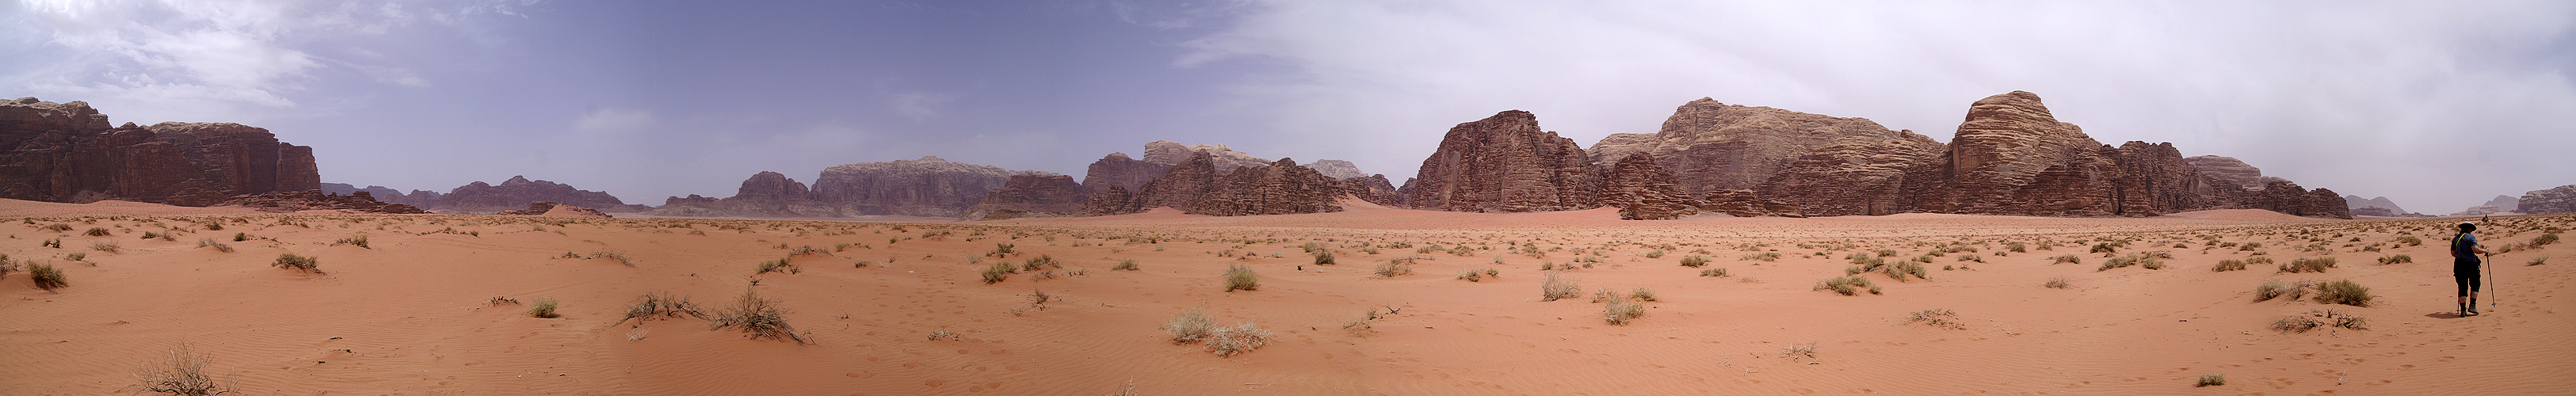 Photo panoramique du Wadi Rum (Khor El Ajram)